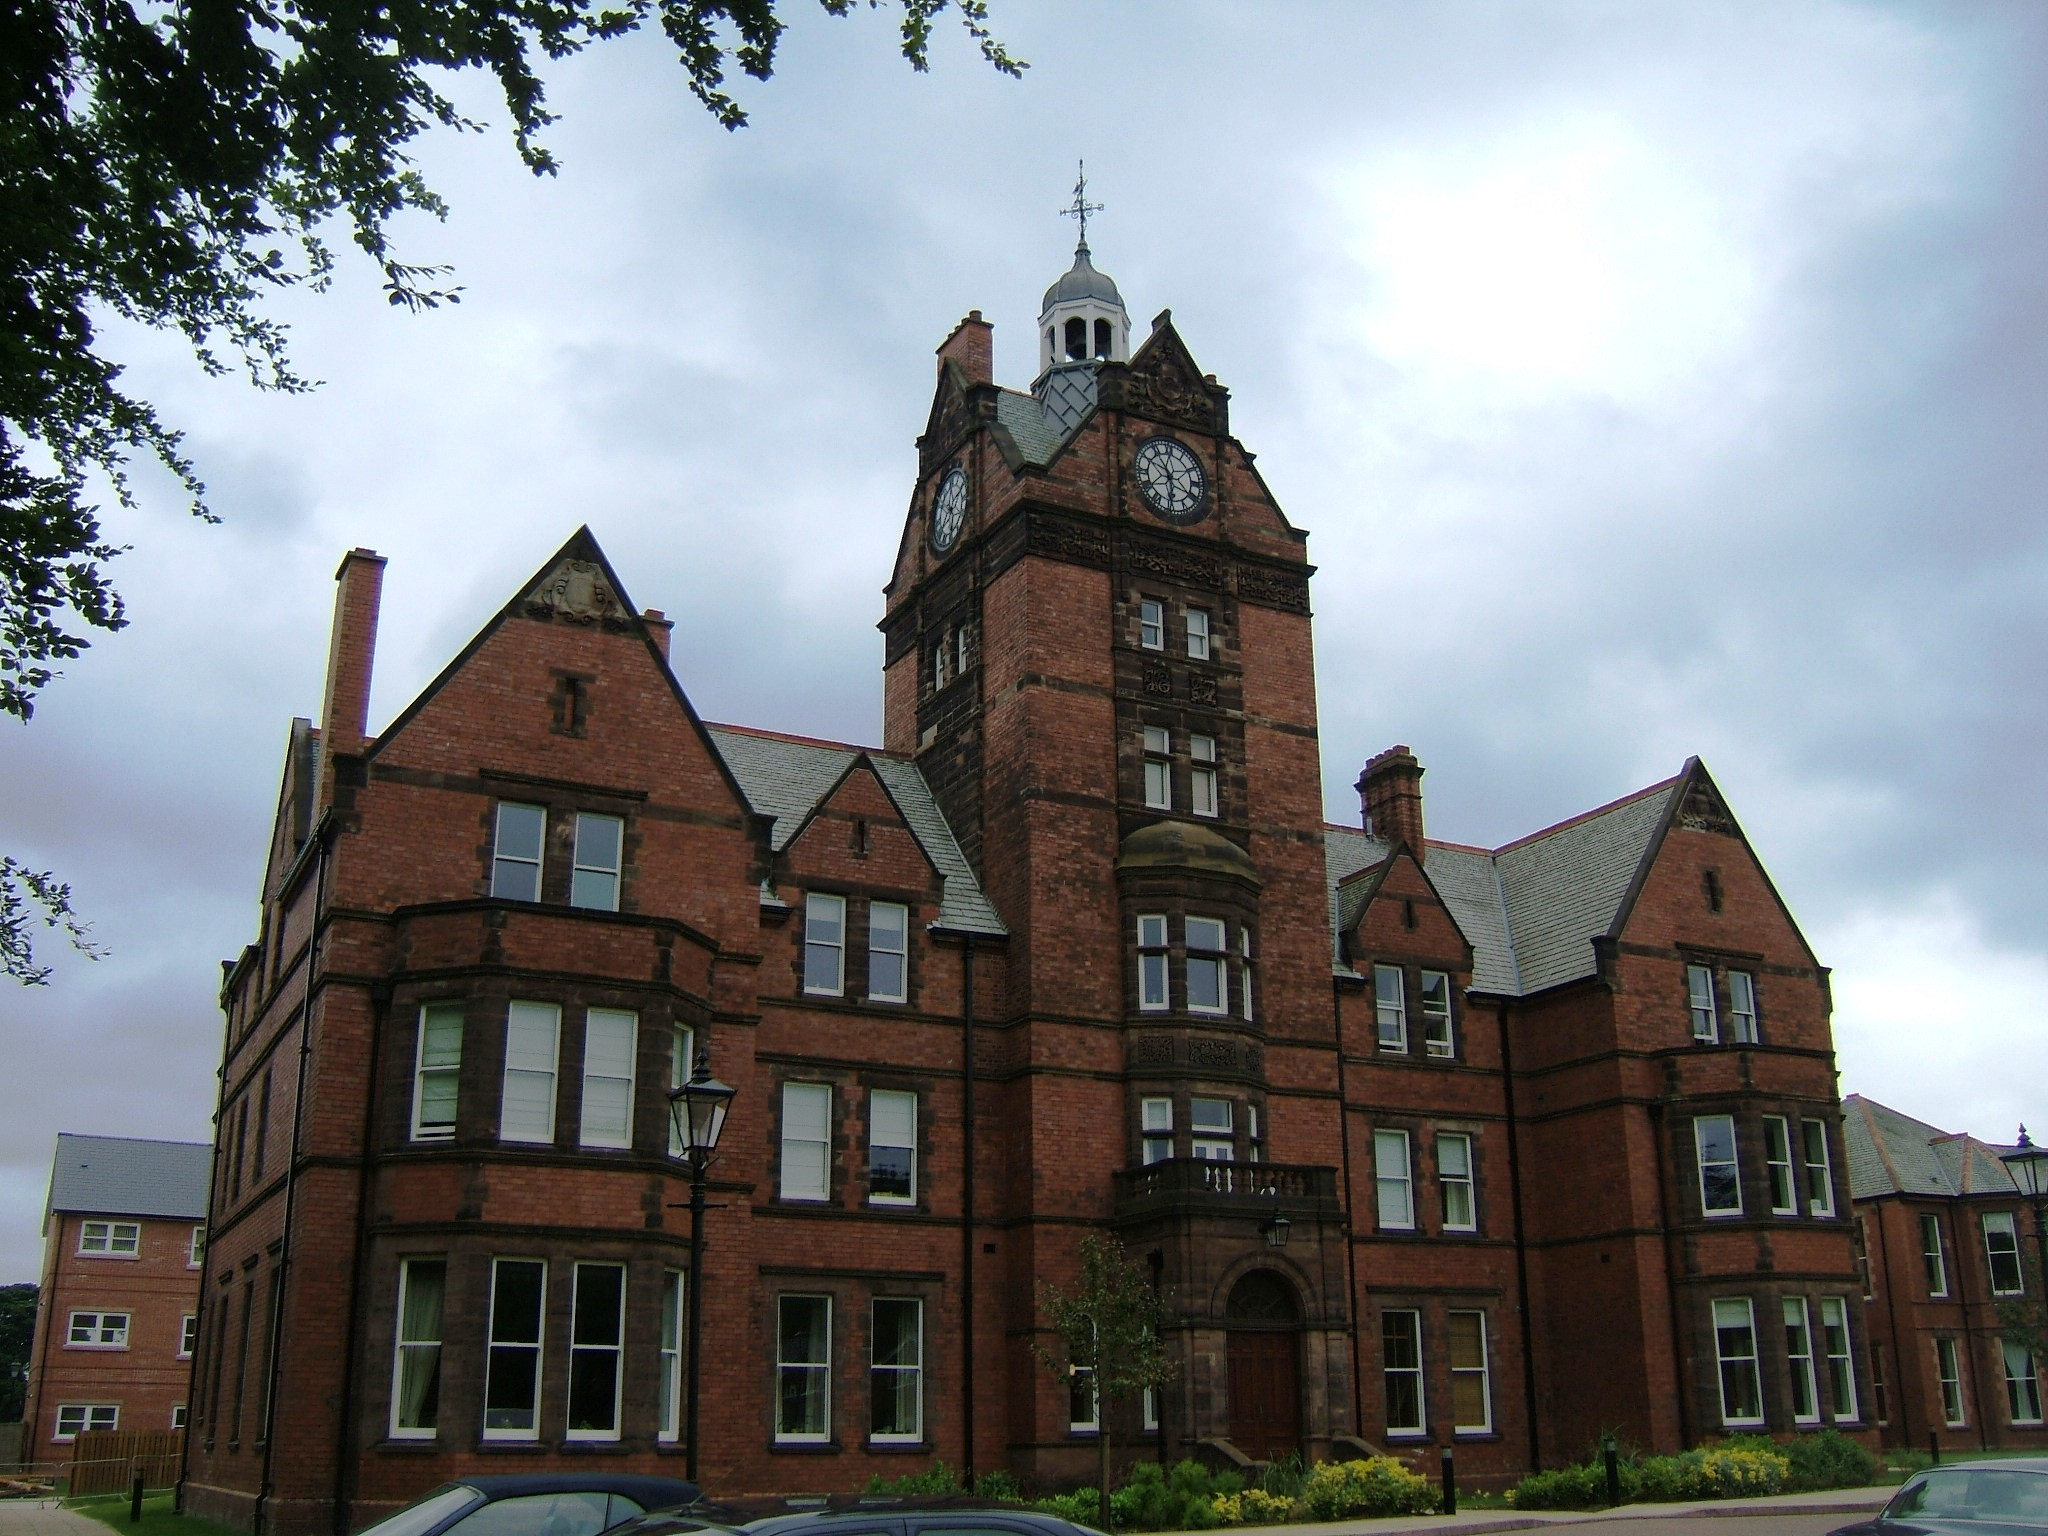 St Edward's Hospital, Cheddleton